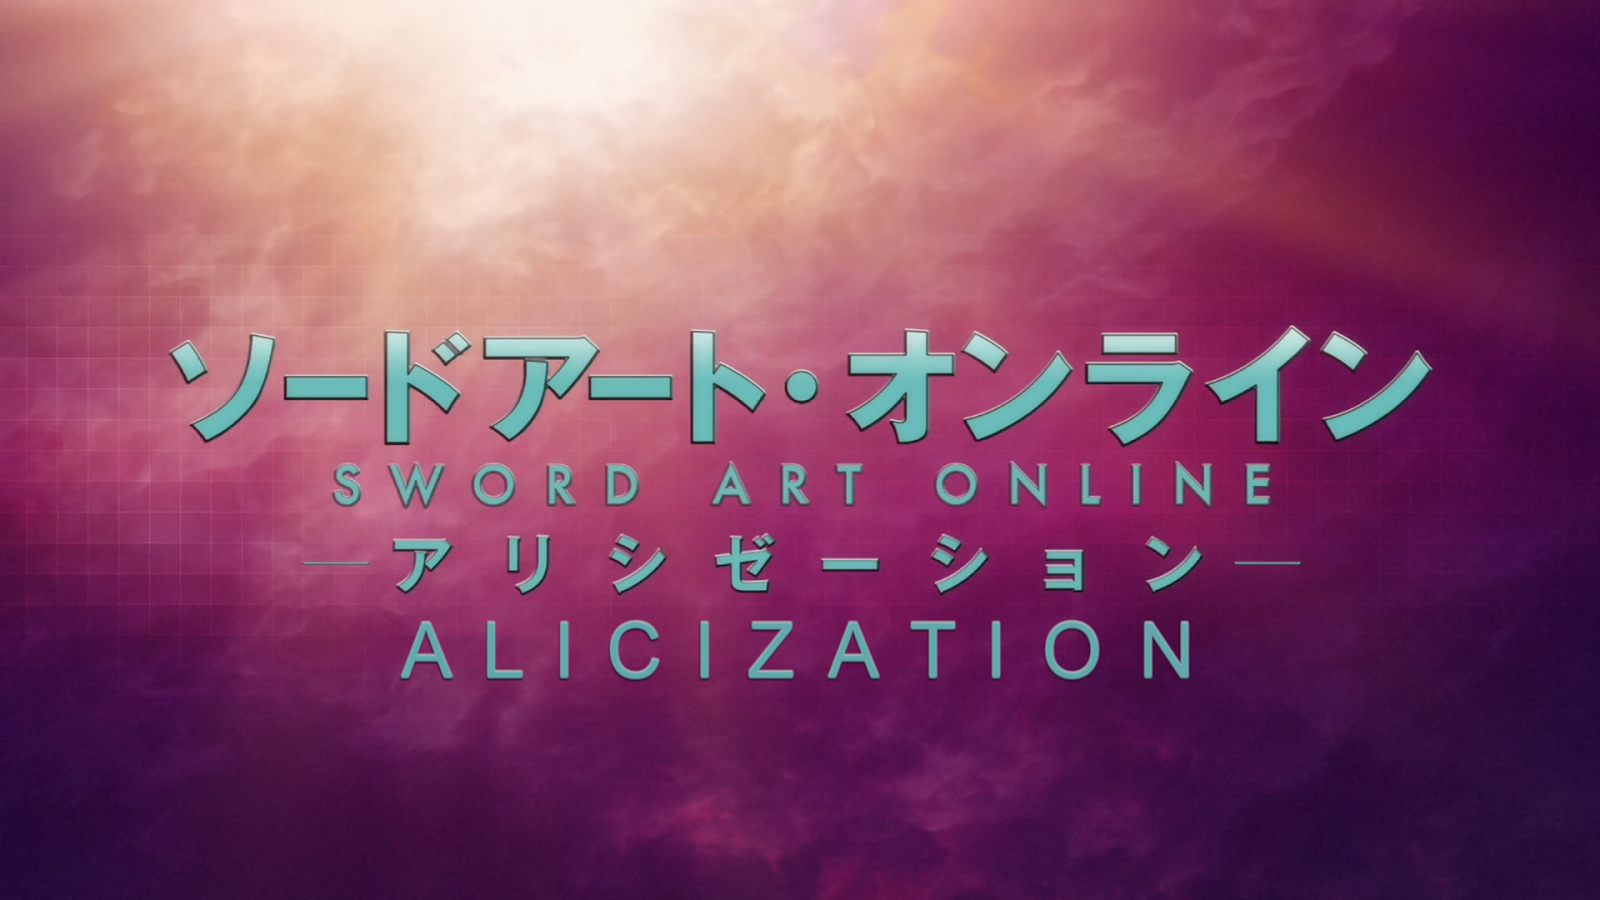 Sword Art Online: Alicization - Episode 01-12 (BD/Bluray)